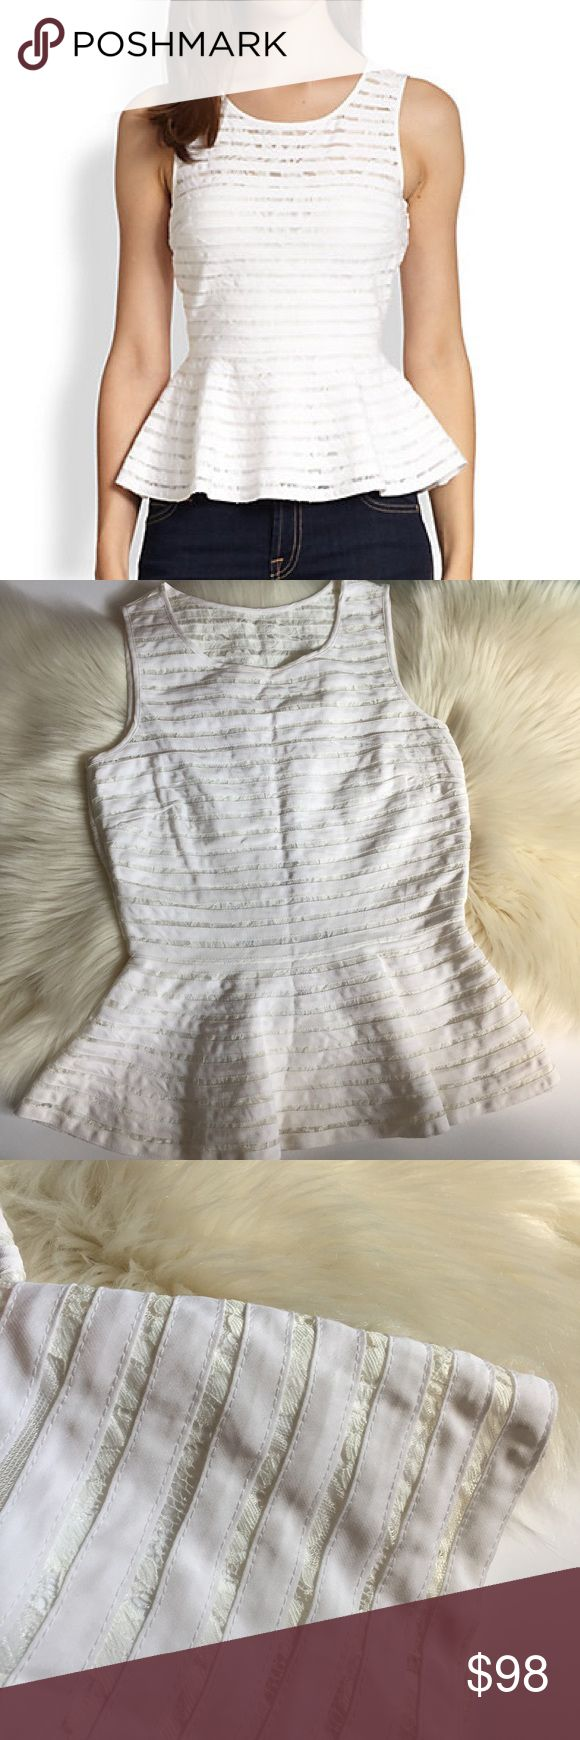 NWT Parker White Mesh Peplum Top NWT Parker Mesh Peplum Top, sold at Saks Fifth for $253 retail, women's size Small Parker Tops